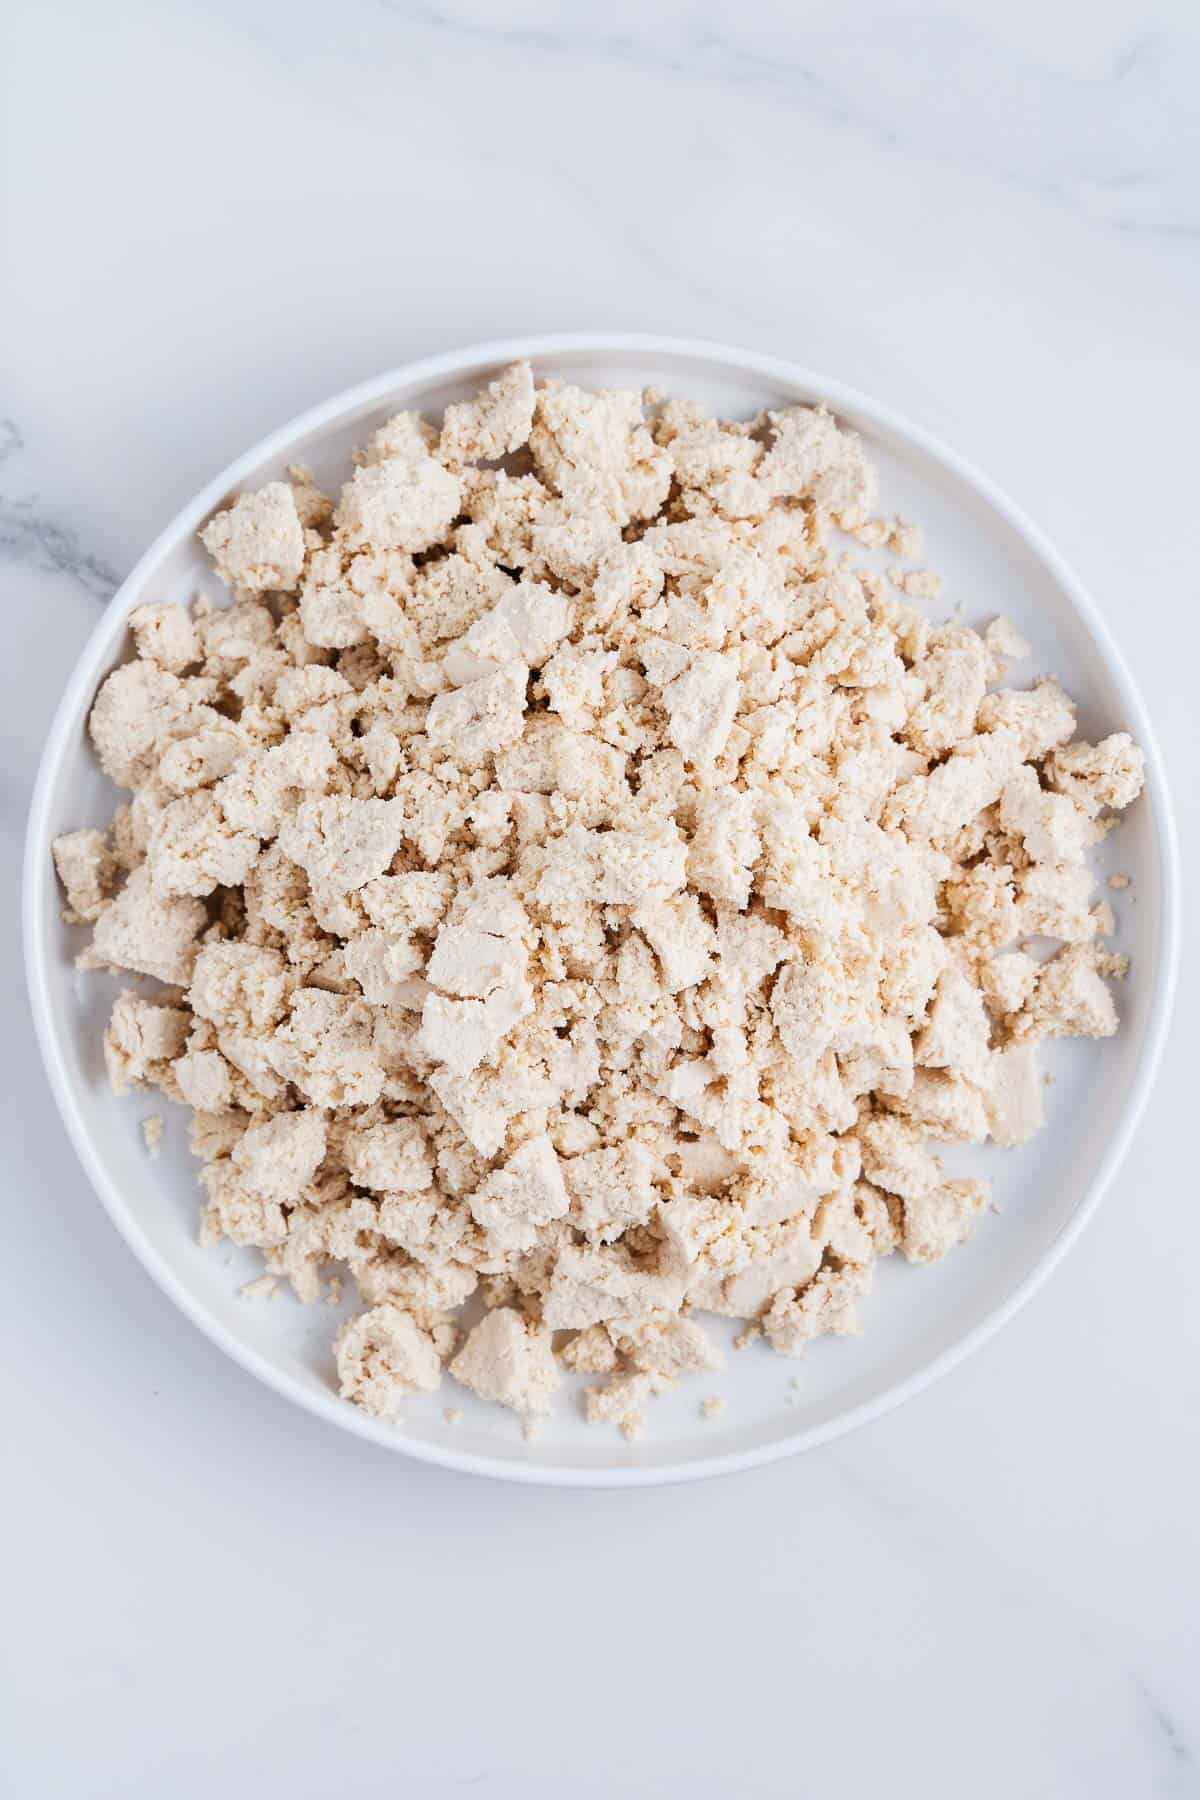 Crumbled Firm Tofu on a Plate